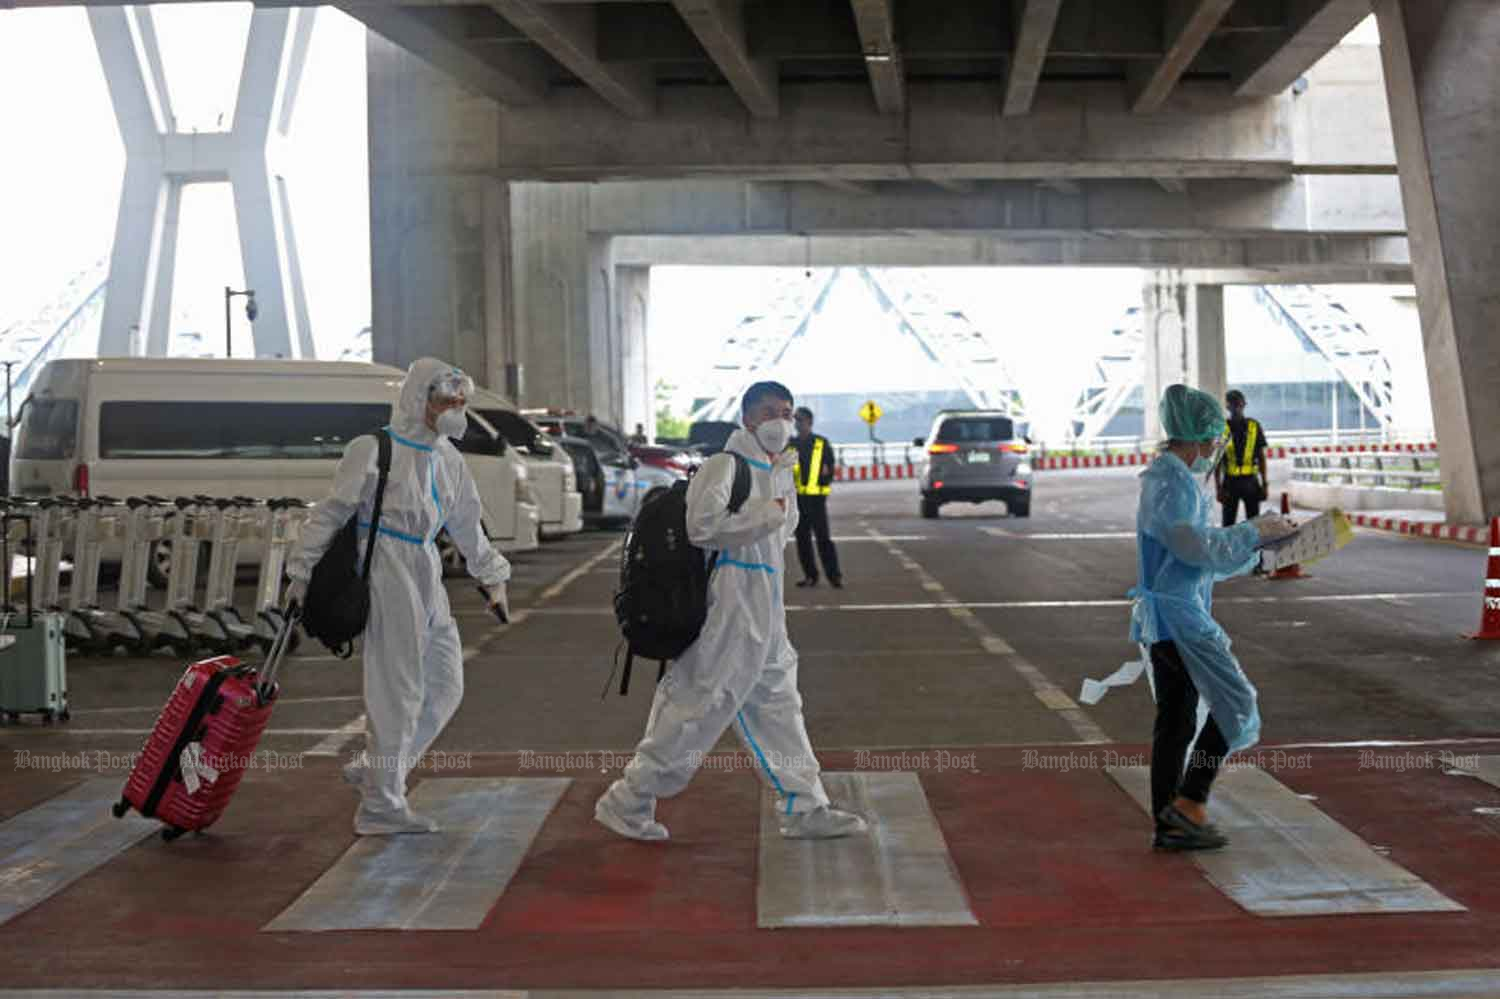 Travellers arrive from overseas in protective gear at Suvarnabhumi airport in Samut Prakan province last October. From next month, quarantine will be shorter and more activities allowed for most arrival from abroad. (File photo)